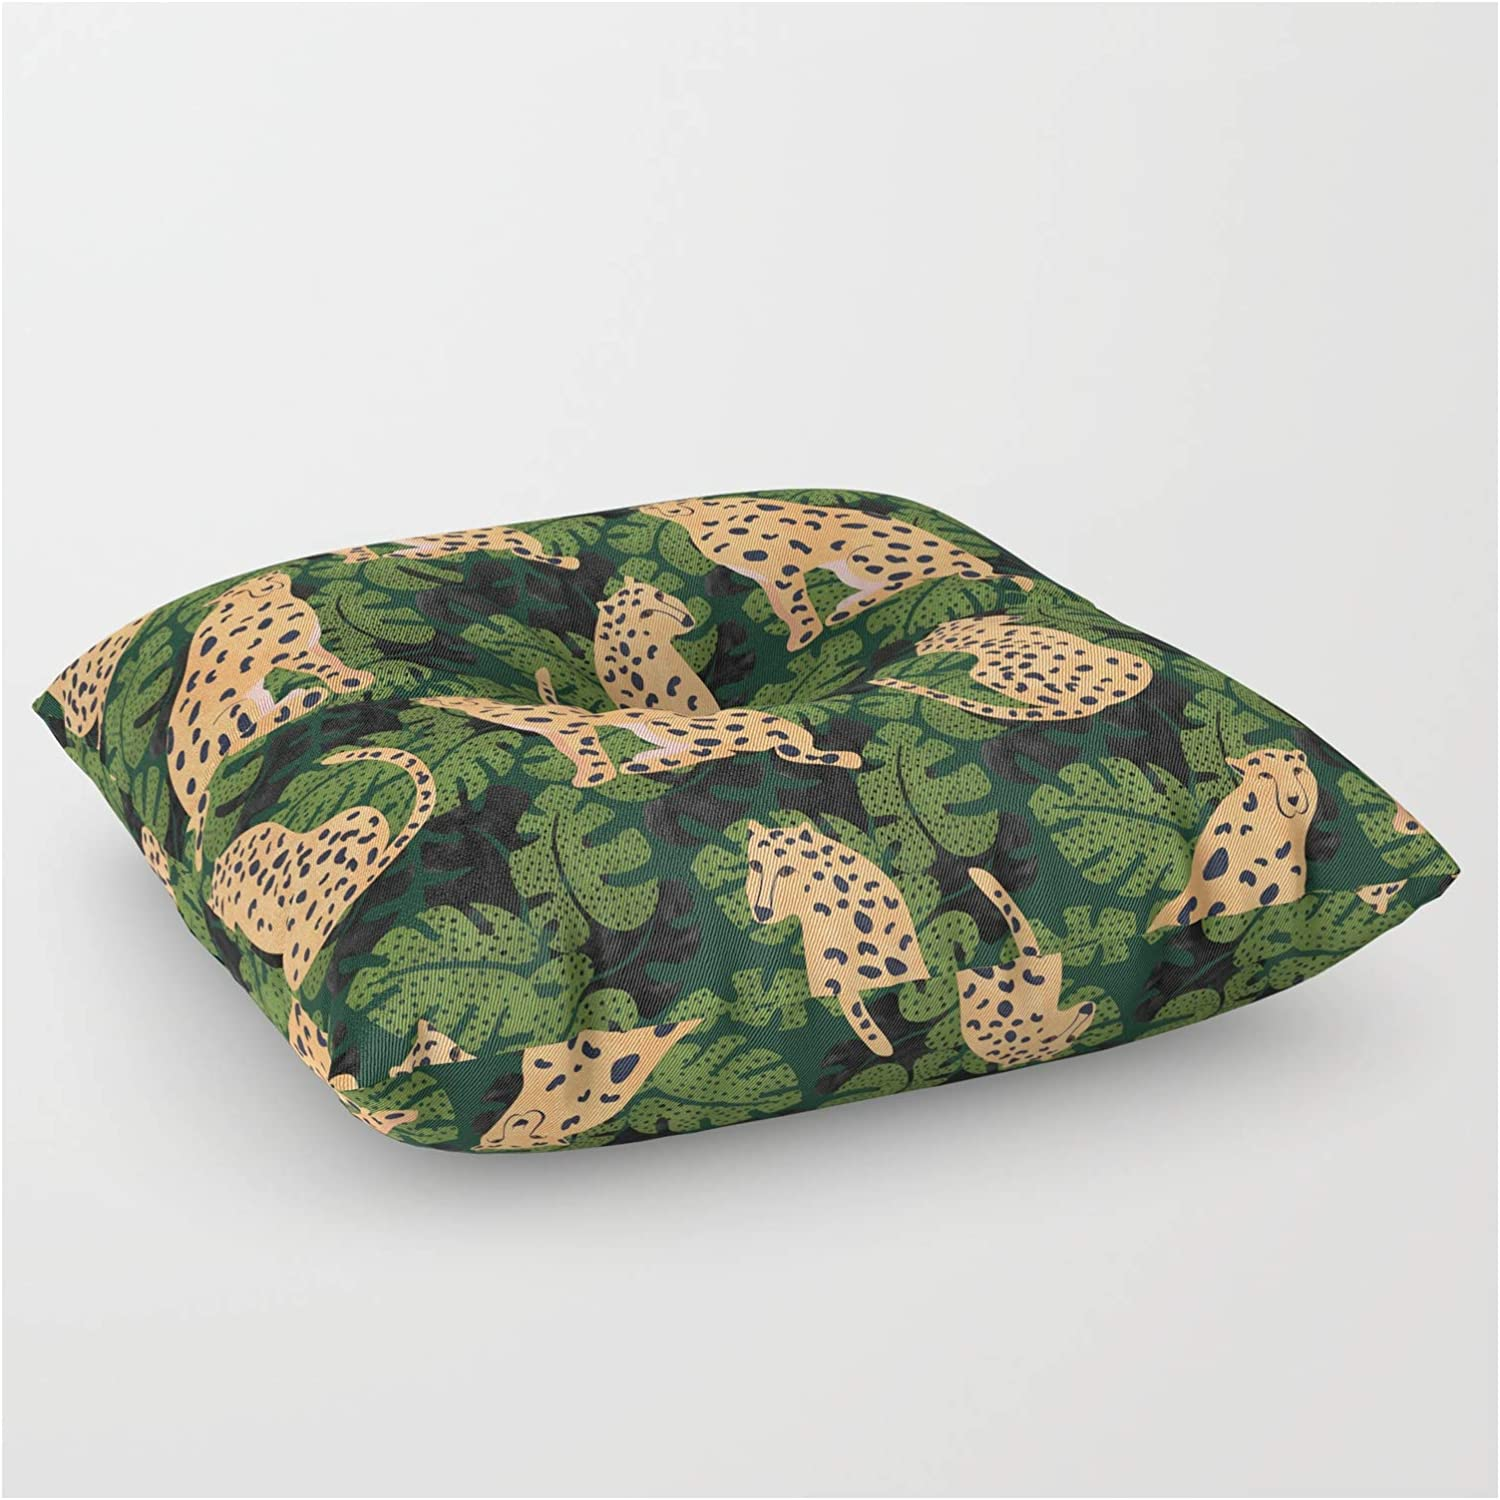 Society6 Cheetah Pattern Max 50% OFF New York Mall by Rose Gold - Floor Pillow on Square